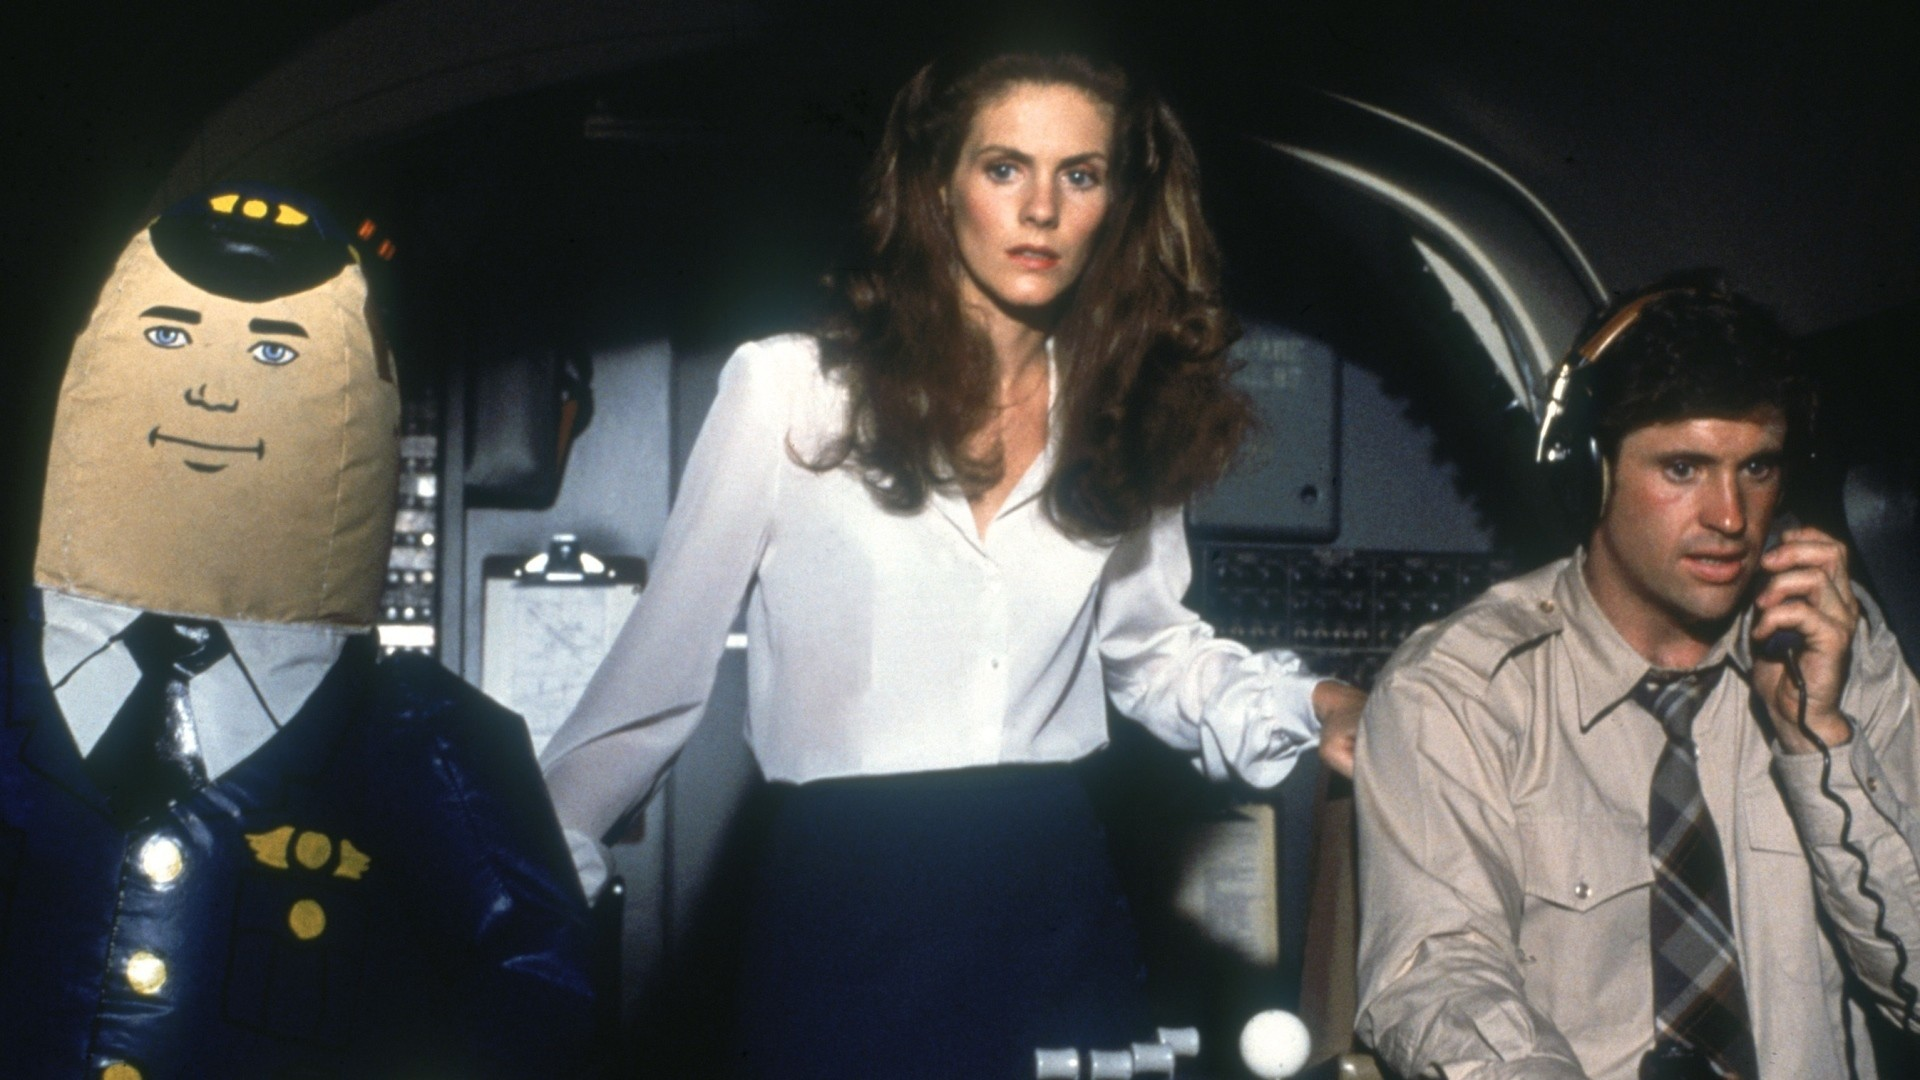 Movie Project #8: Airplane! [1980] | The Warning Sign